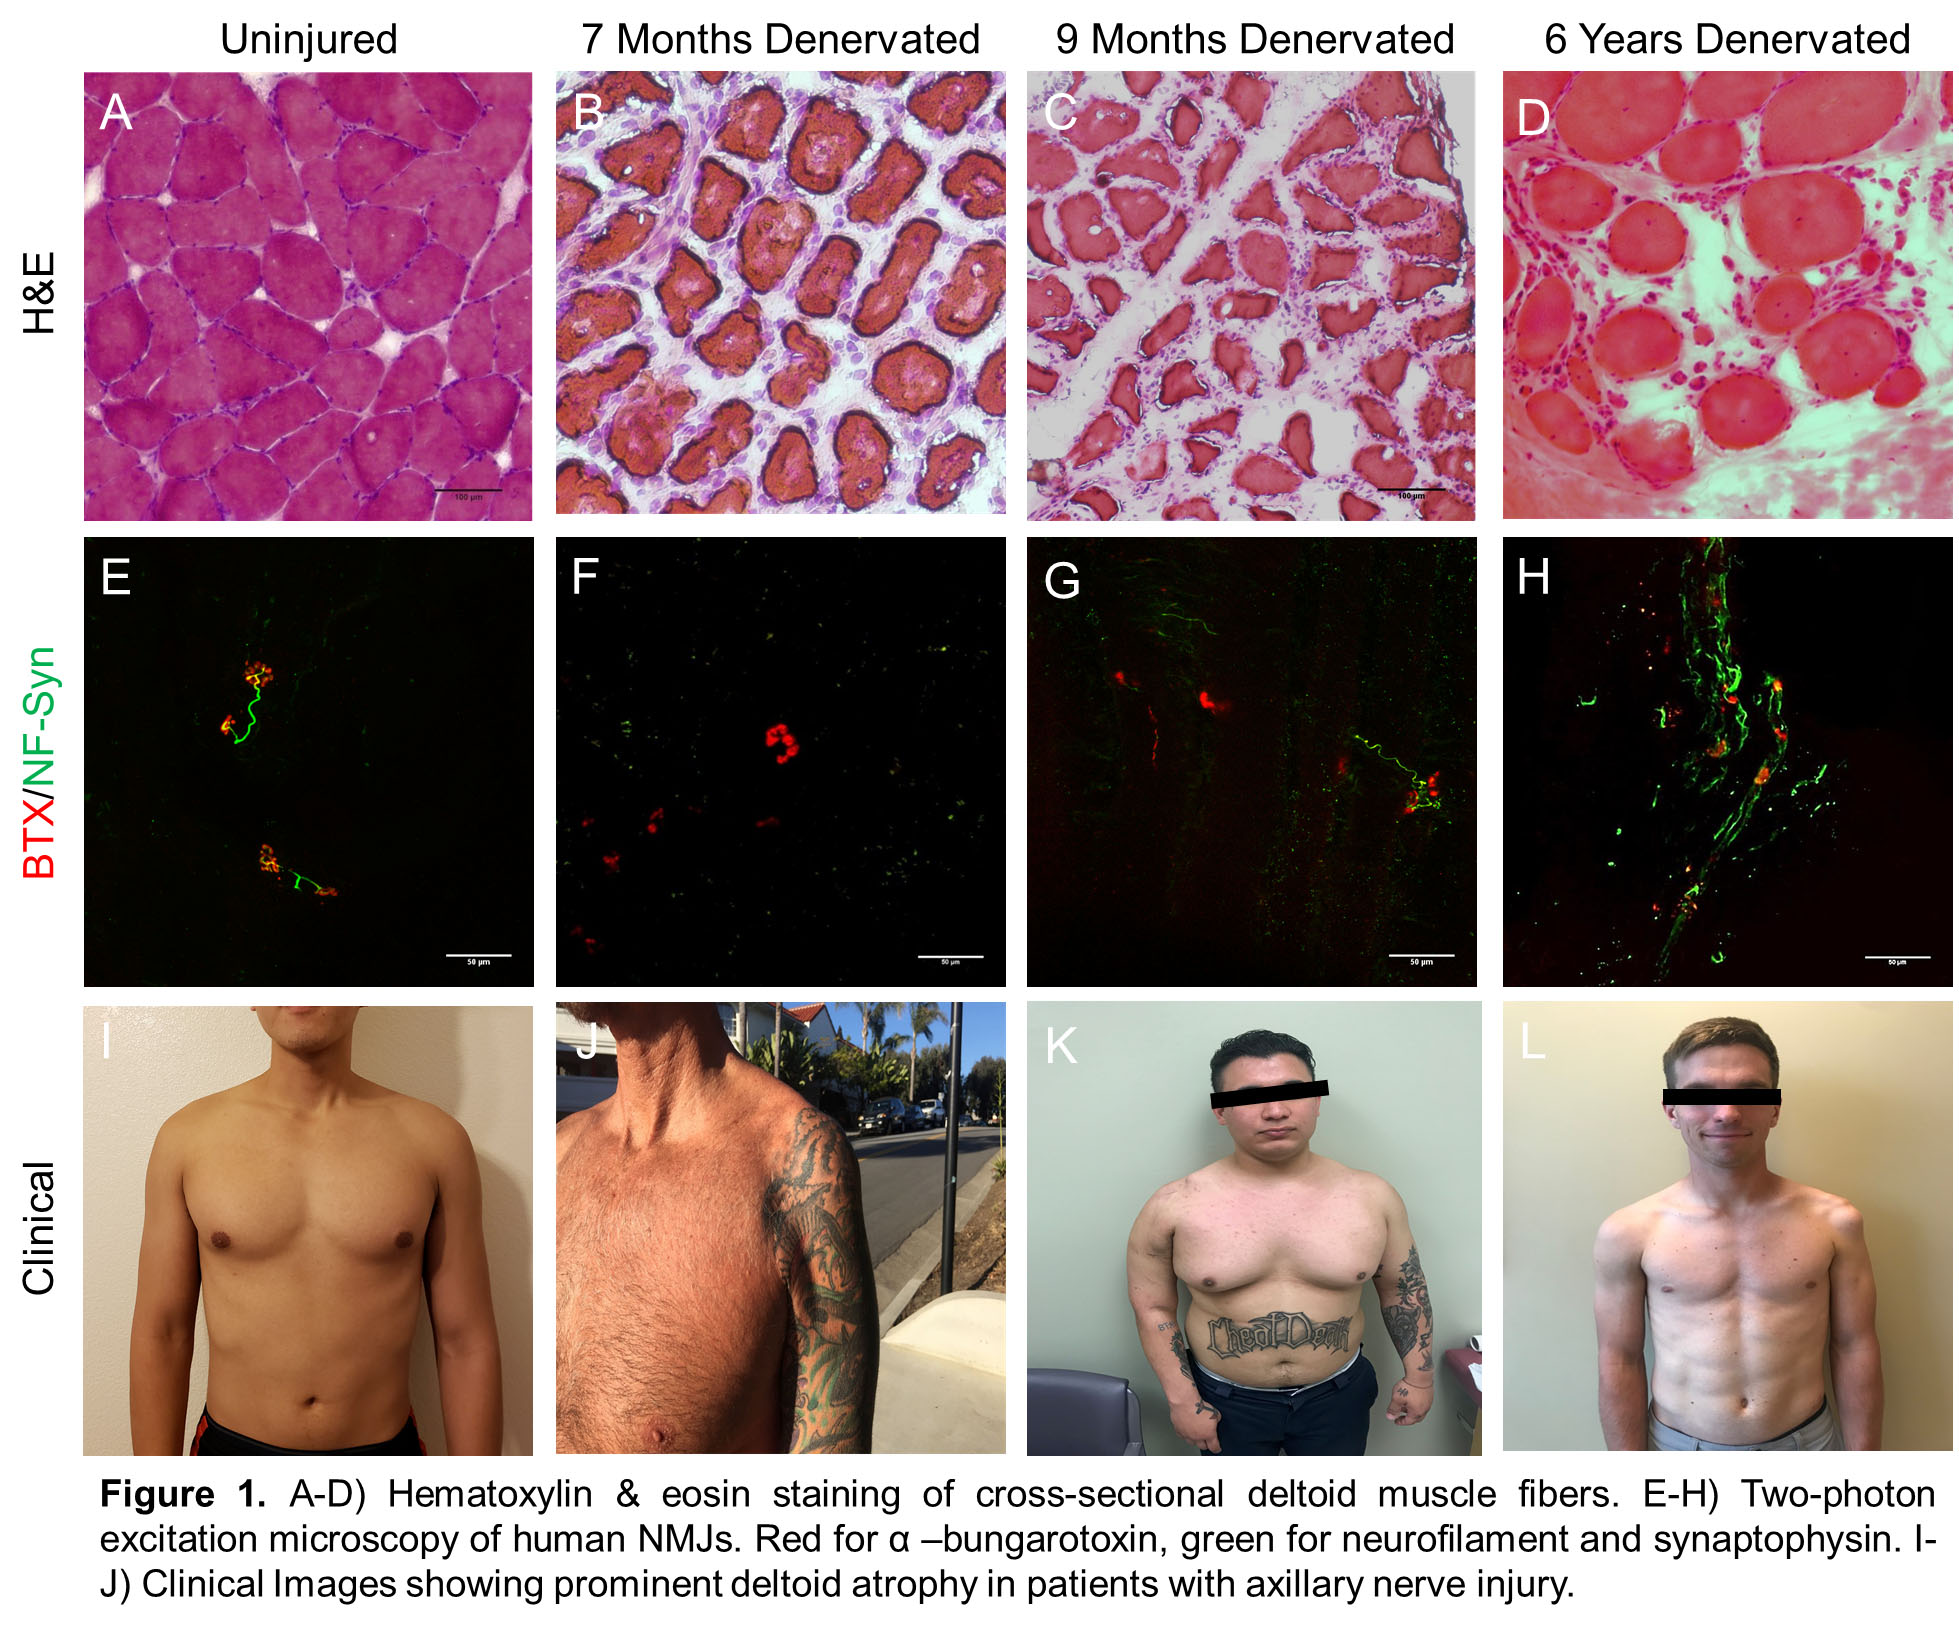 PSRC - Preoperative Biopsy of Denervated Muscles May be a